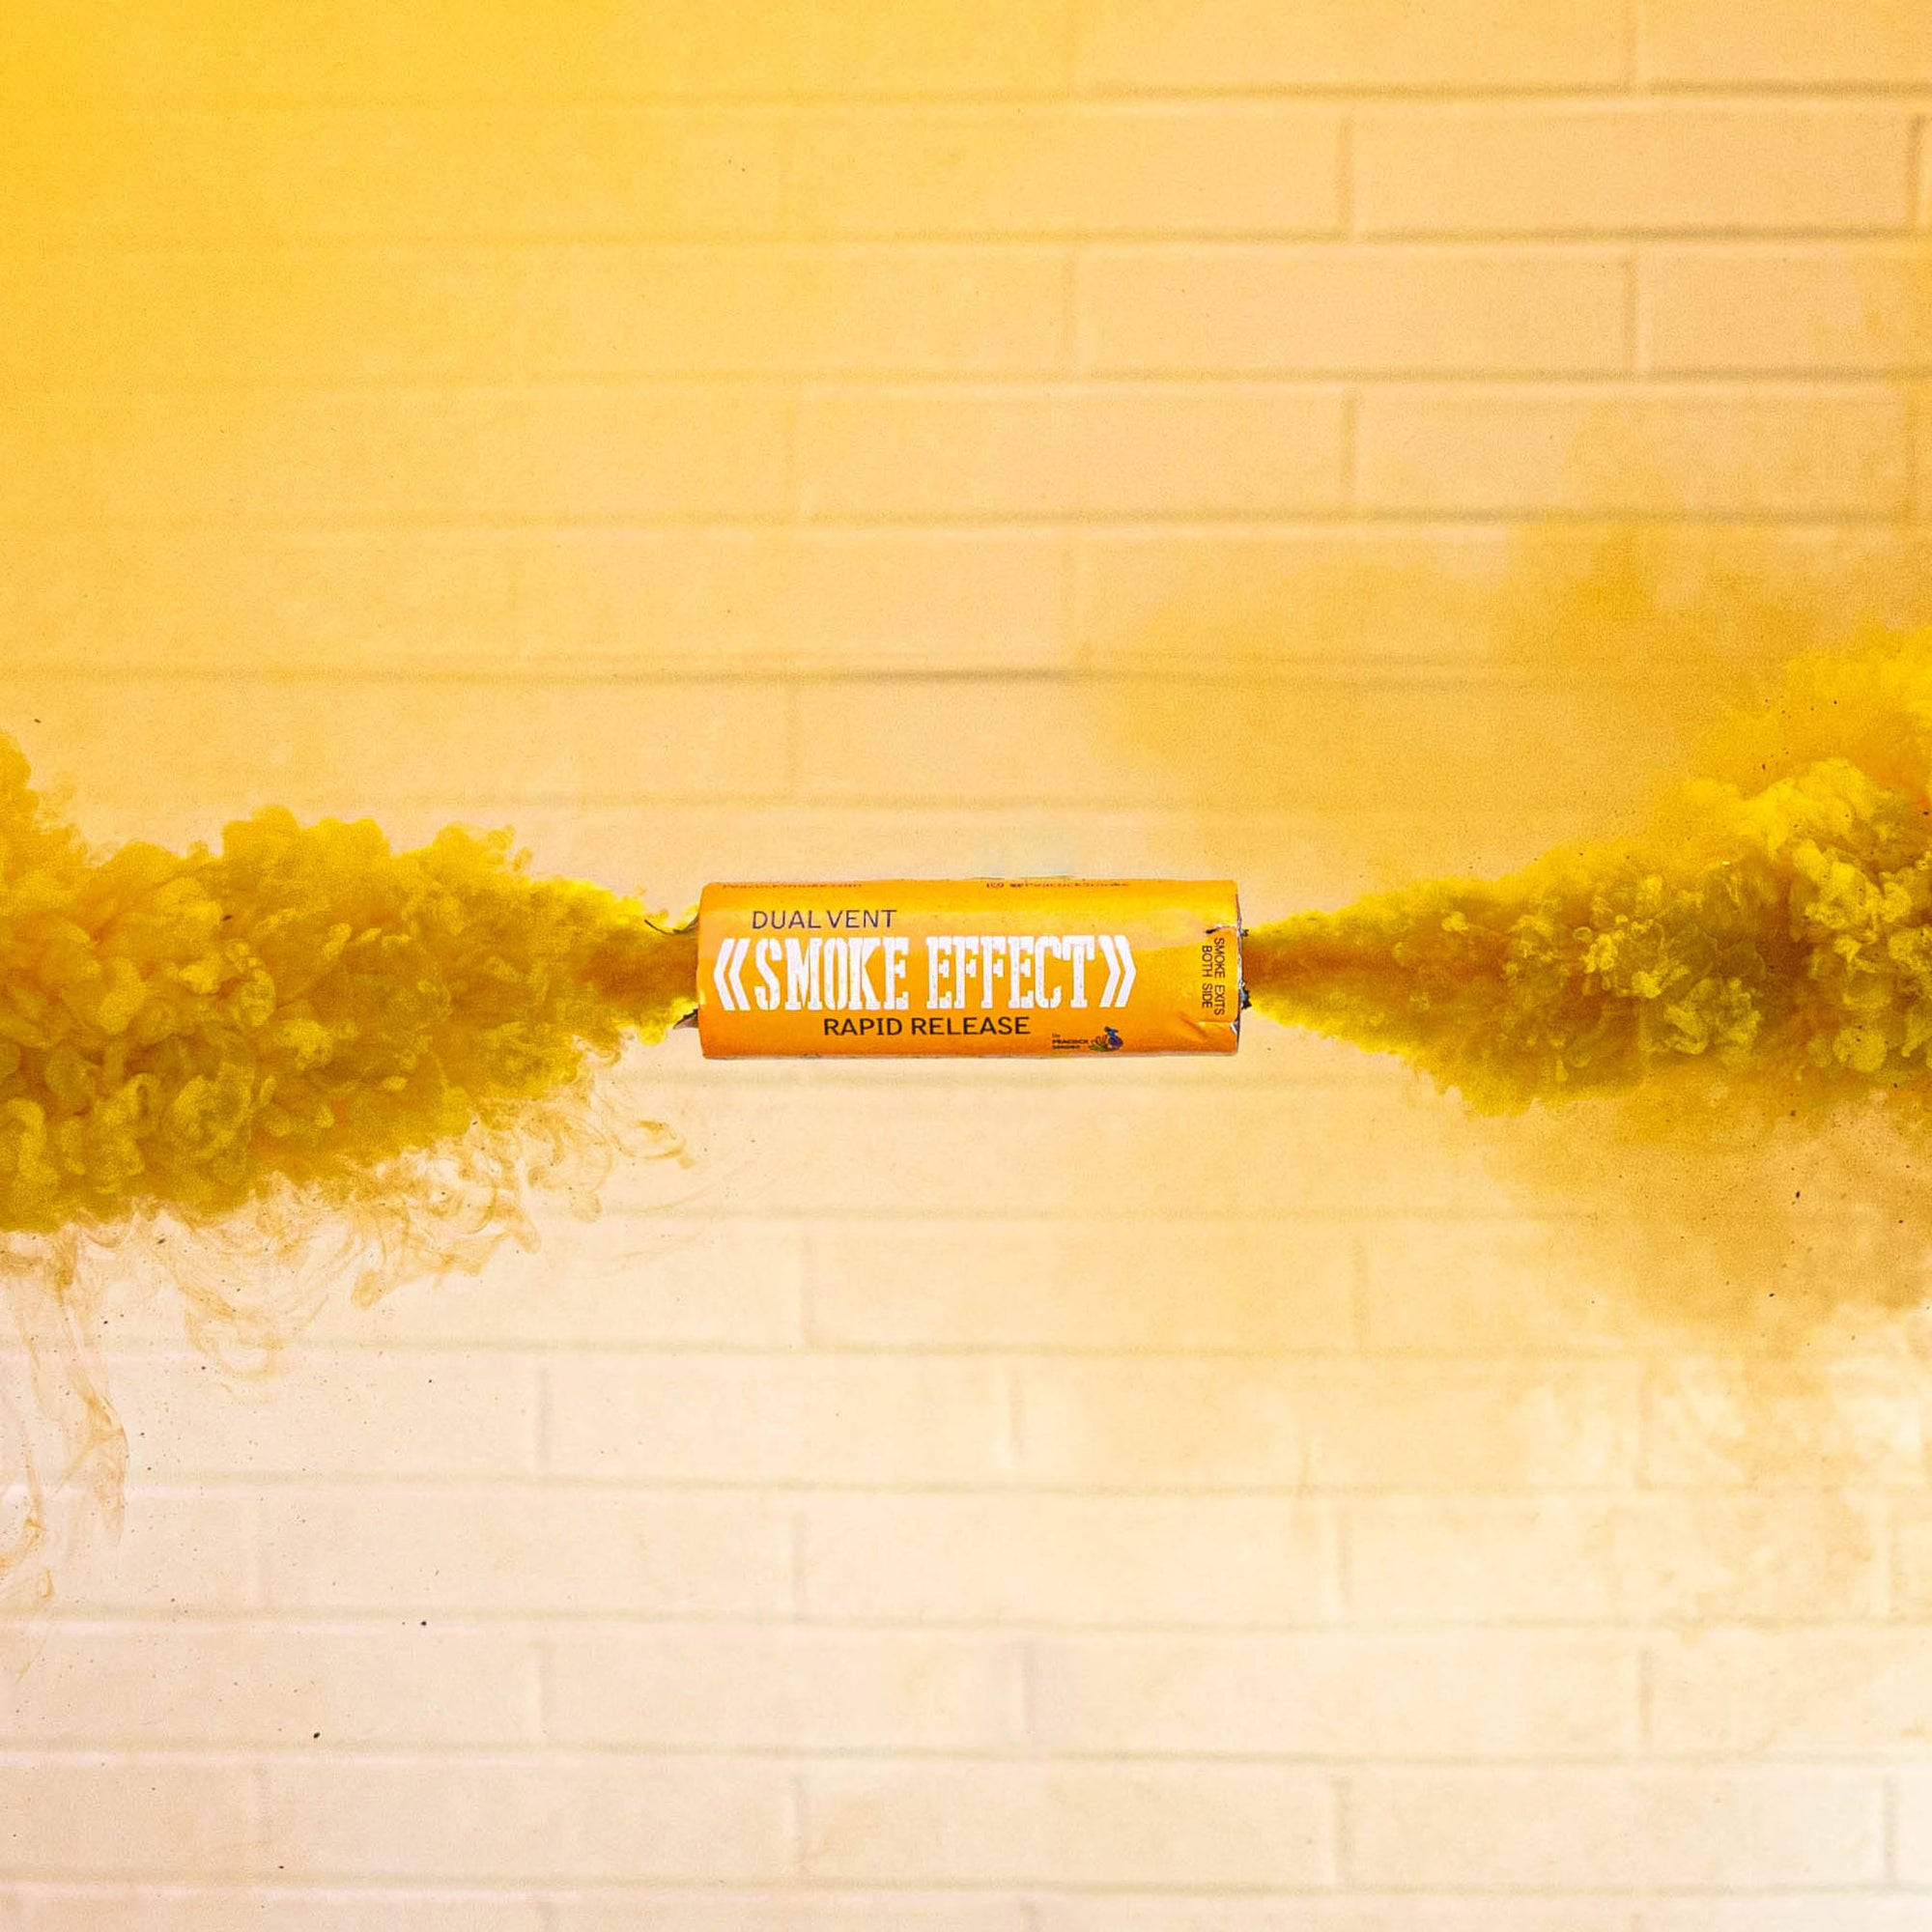 Dual Vent Ring Pull Smoke Grenade - Rapid Release [Orange]